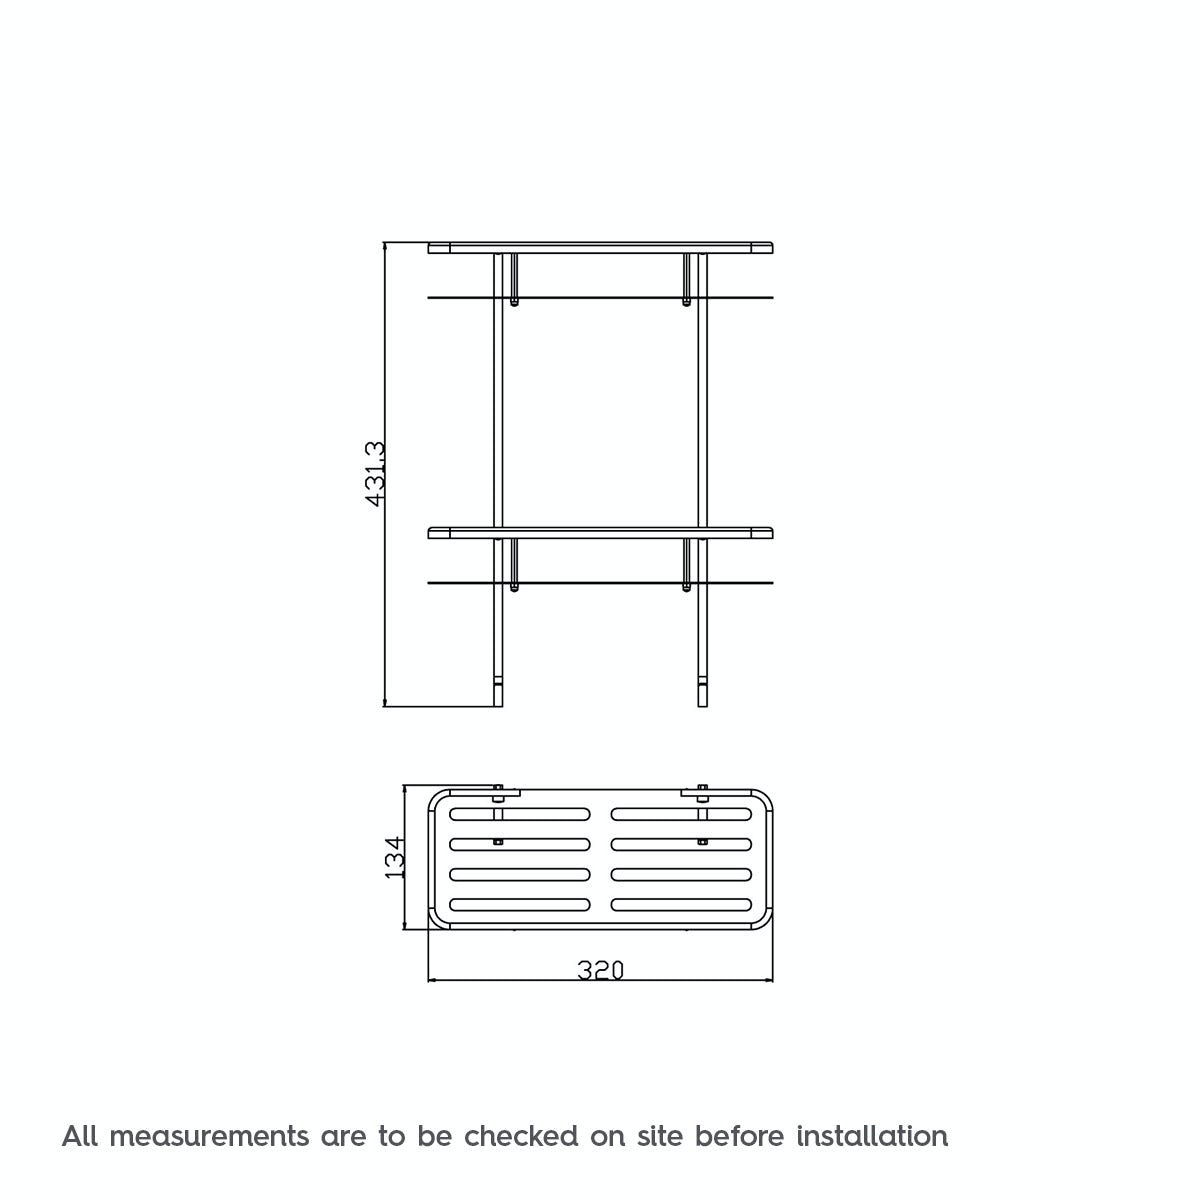 Dimensions for Orchard Options brass double shower caddy